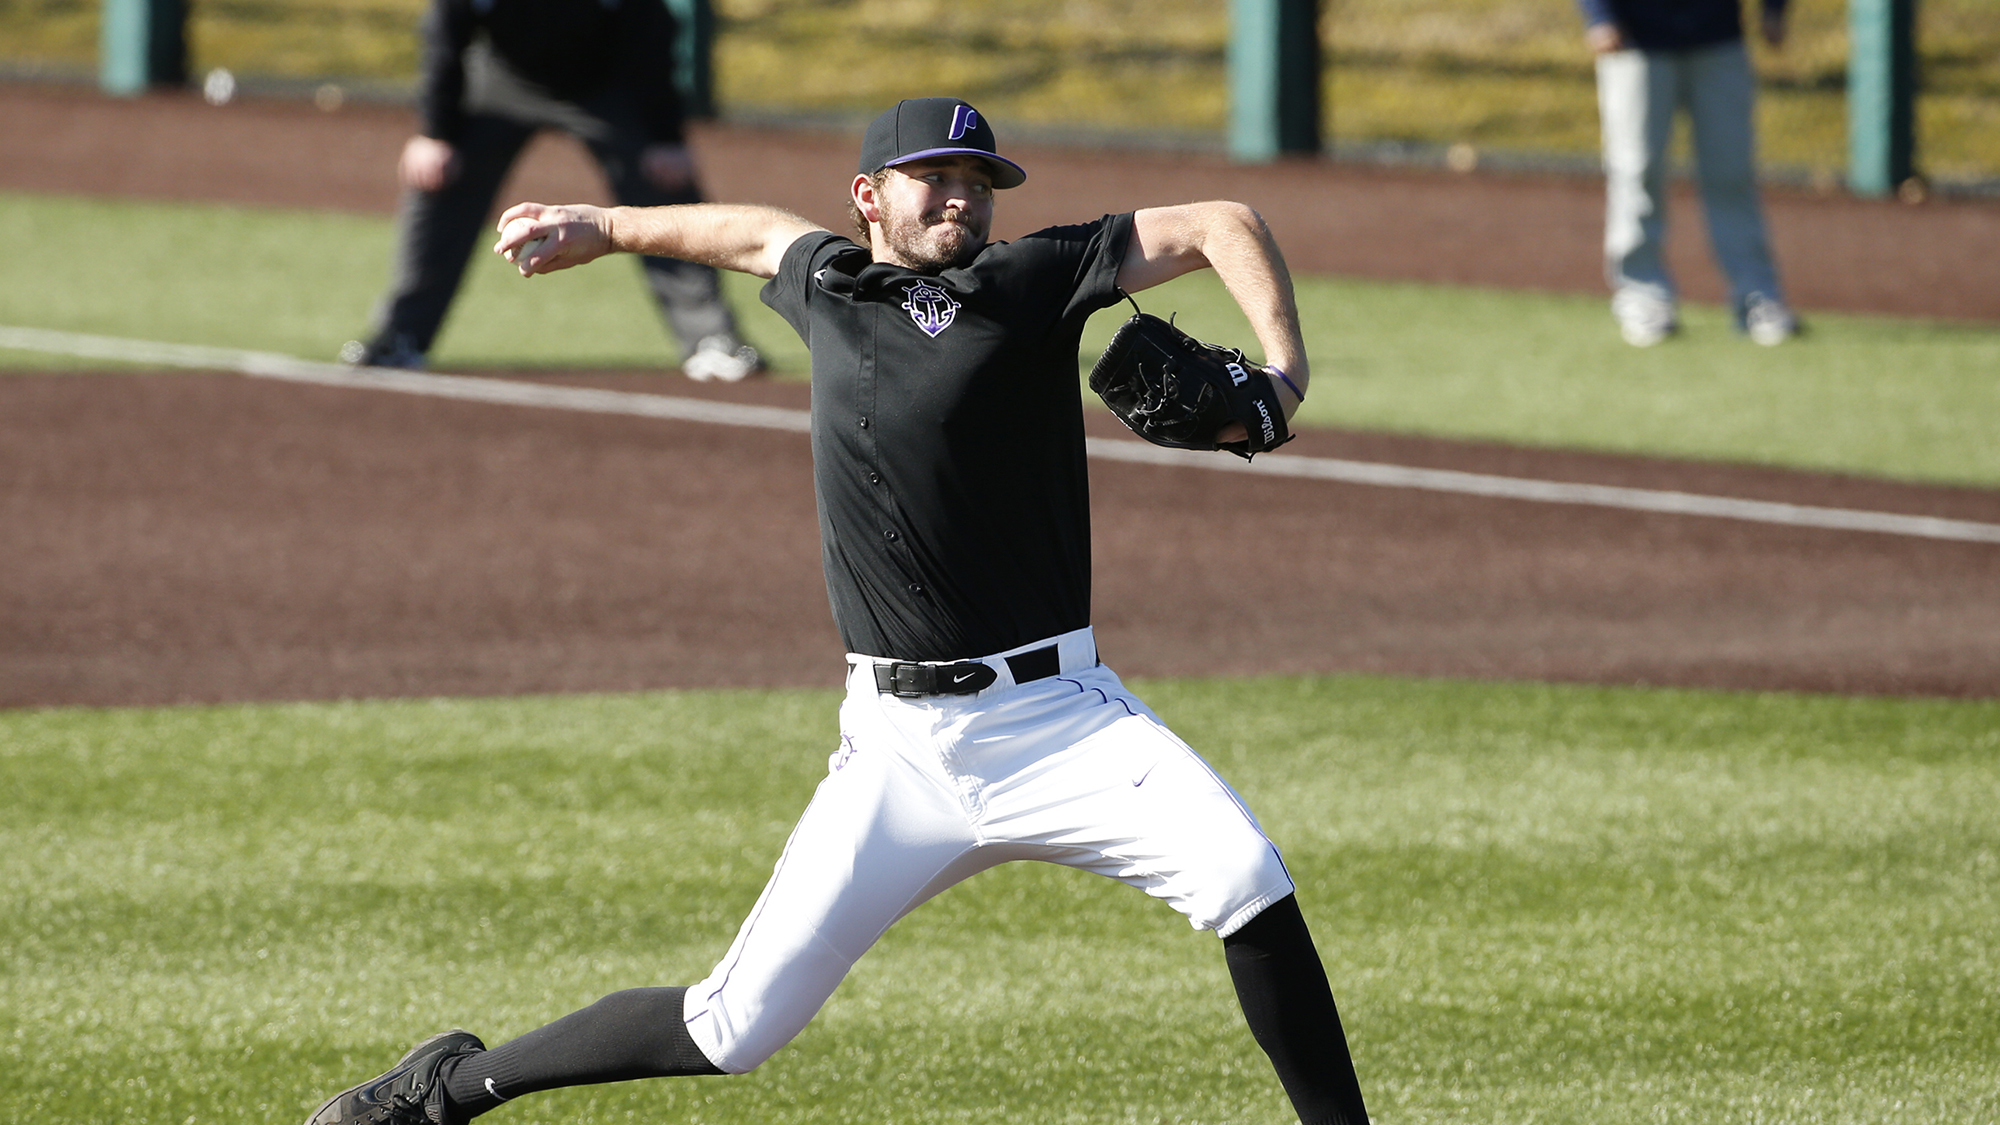 Clements Nabs Second Straight WCC Pitcher of the Week Honor